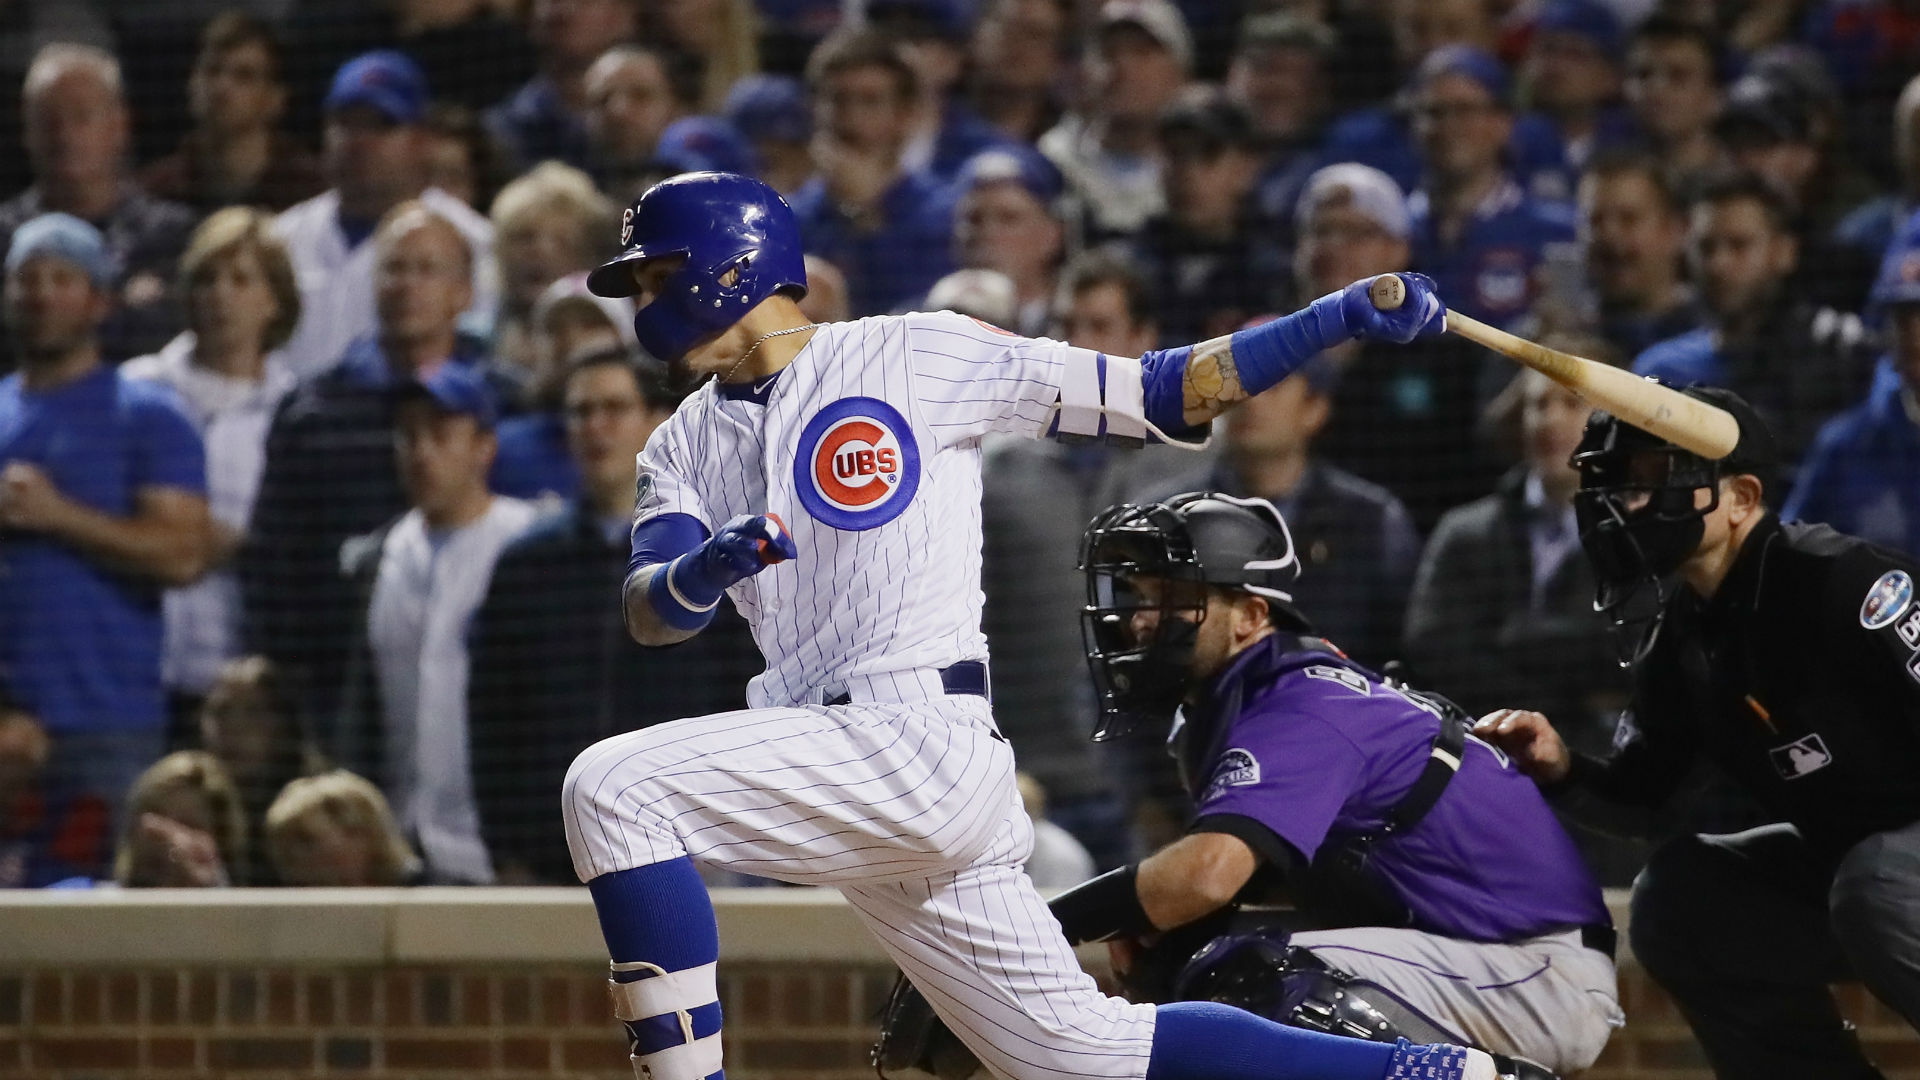 Get your ticket to see the Chicago Cubs at the Lowest Possible Price All Tickets are 100 guaranteed Lets Go!